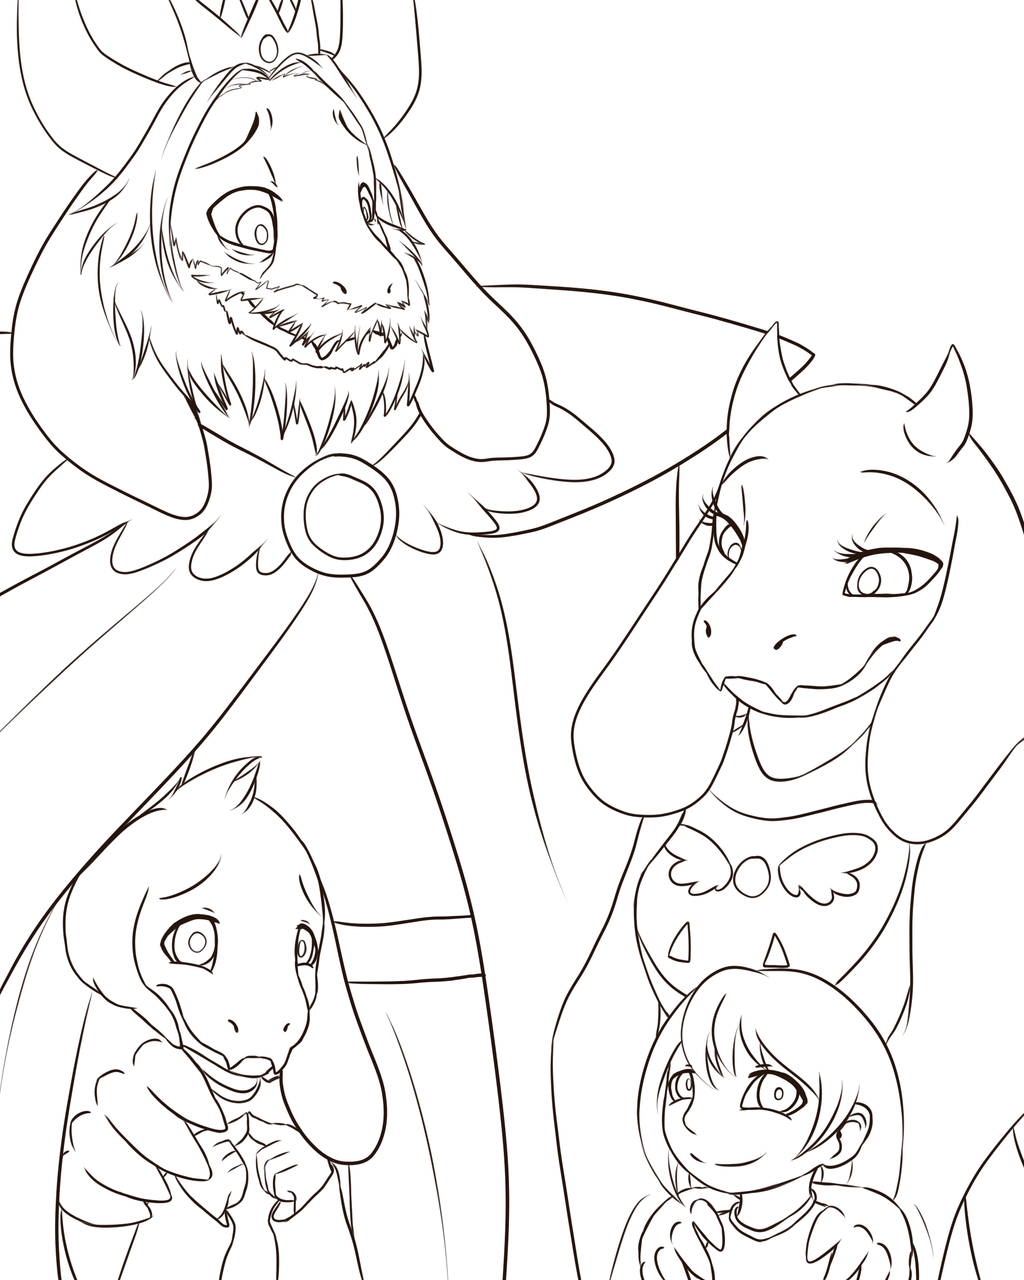 Undertale collab family by randomcomicsheet on deviantart for Undertale coloring pages